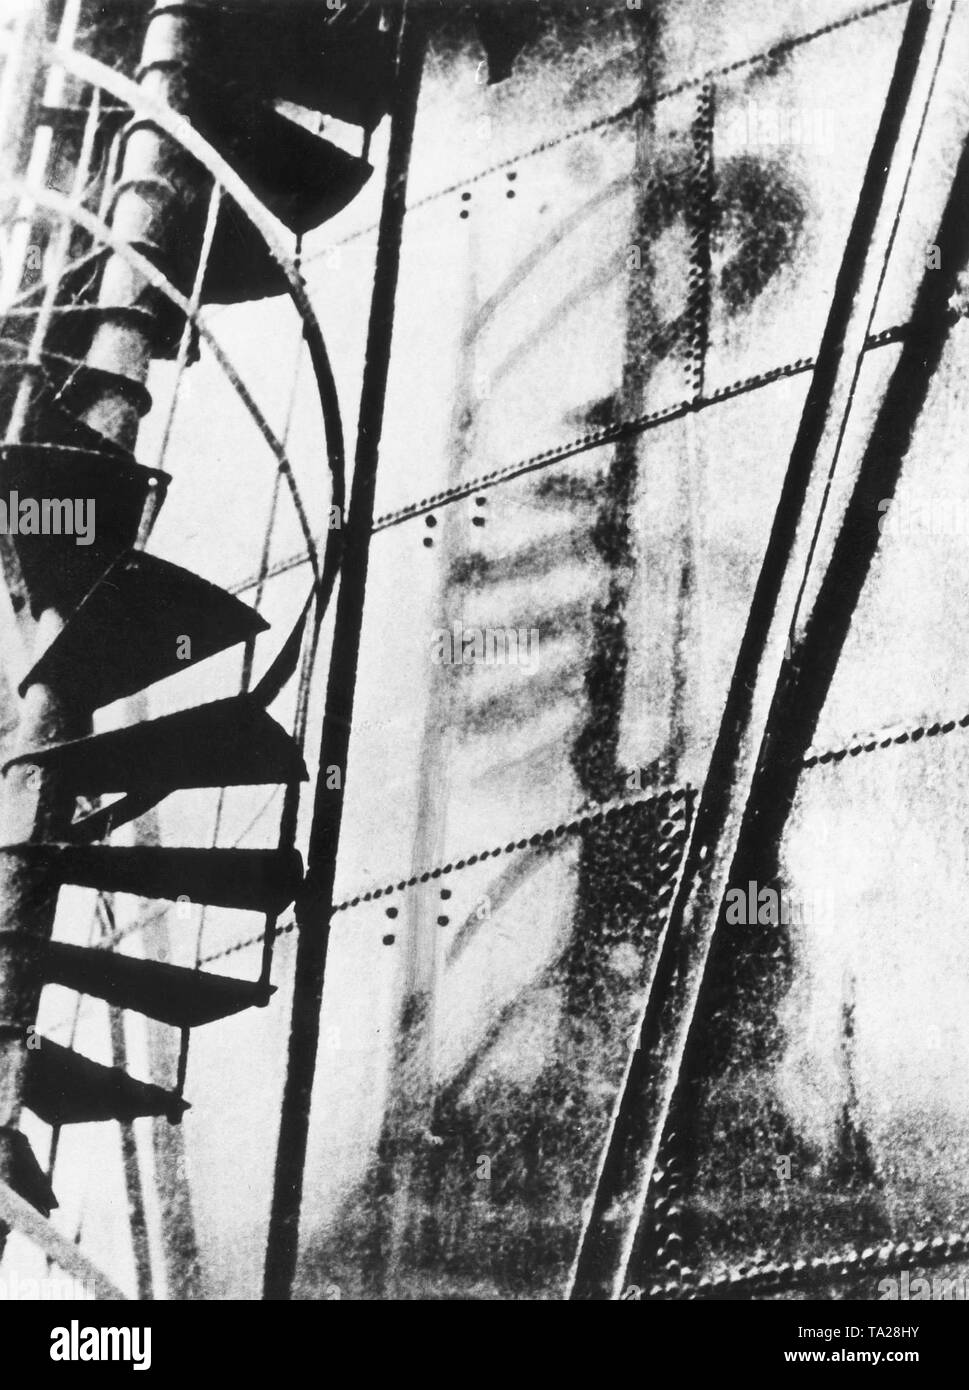 The flash of the atomic bomb explosion has left the shadow of a spiral staircase in an iron wall. Stock Photo